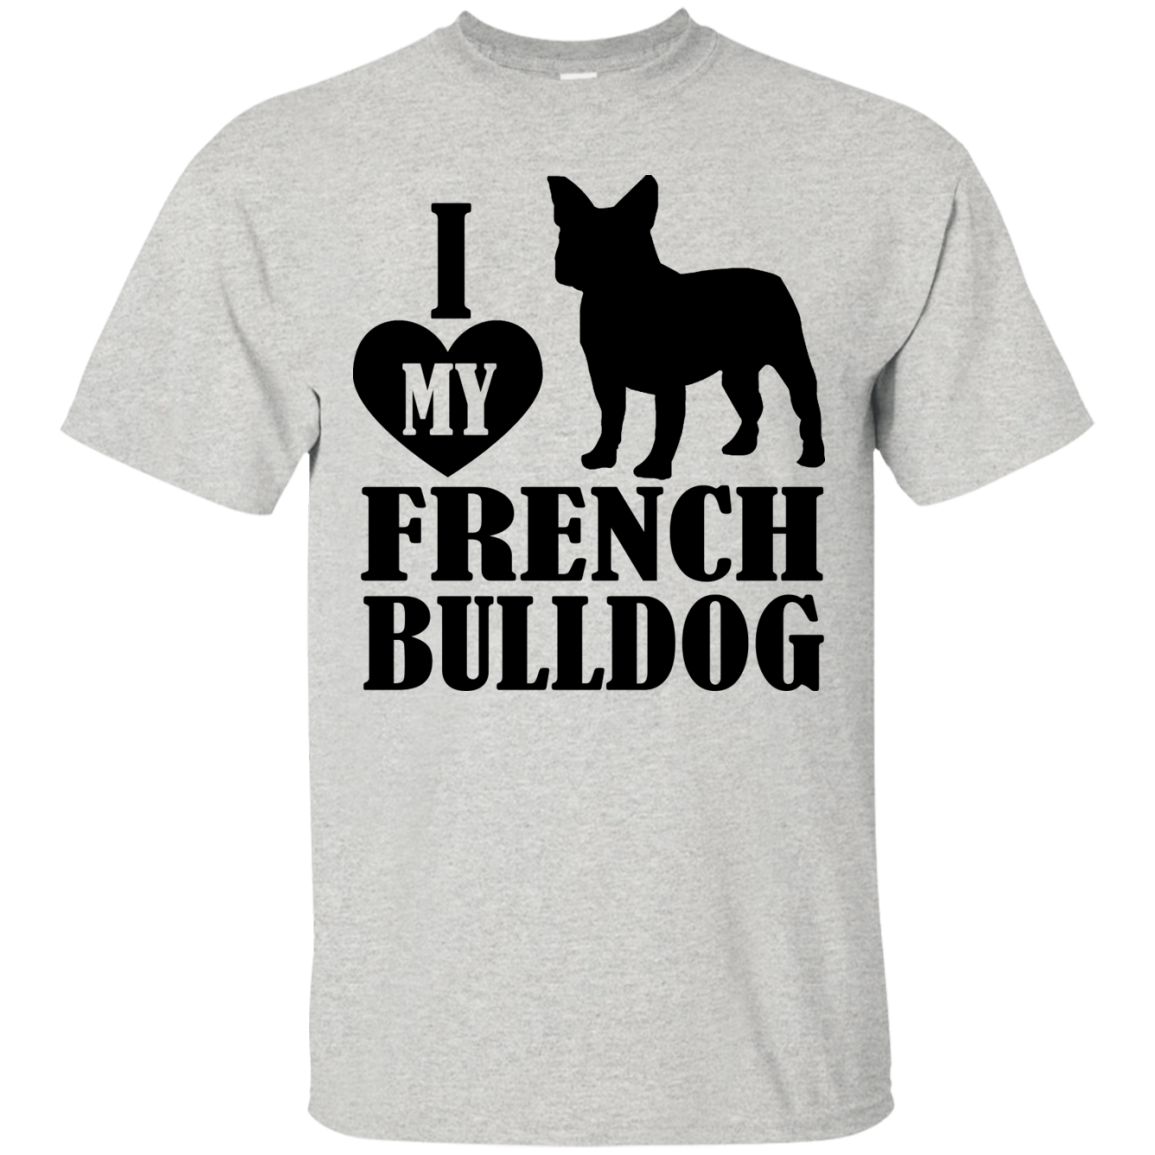 I Love My French Bulldog - OMG I Love Dogs